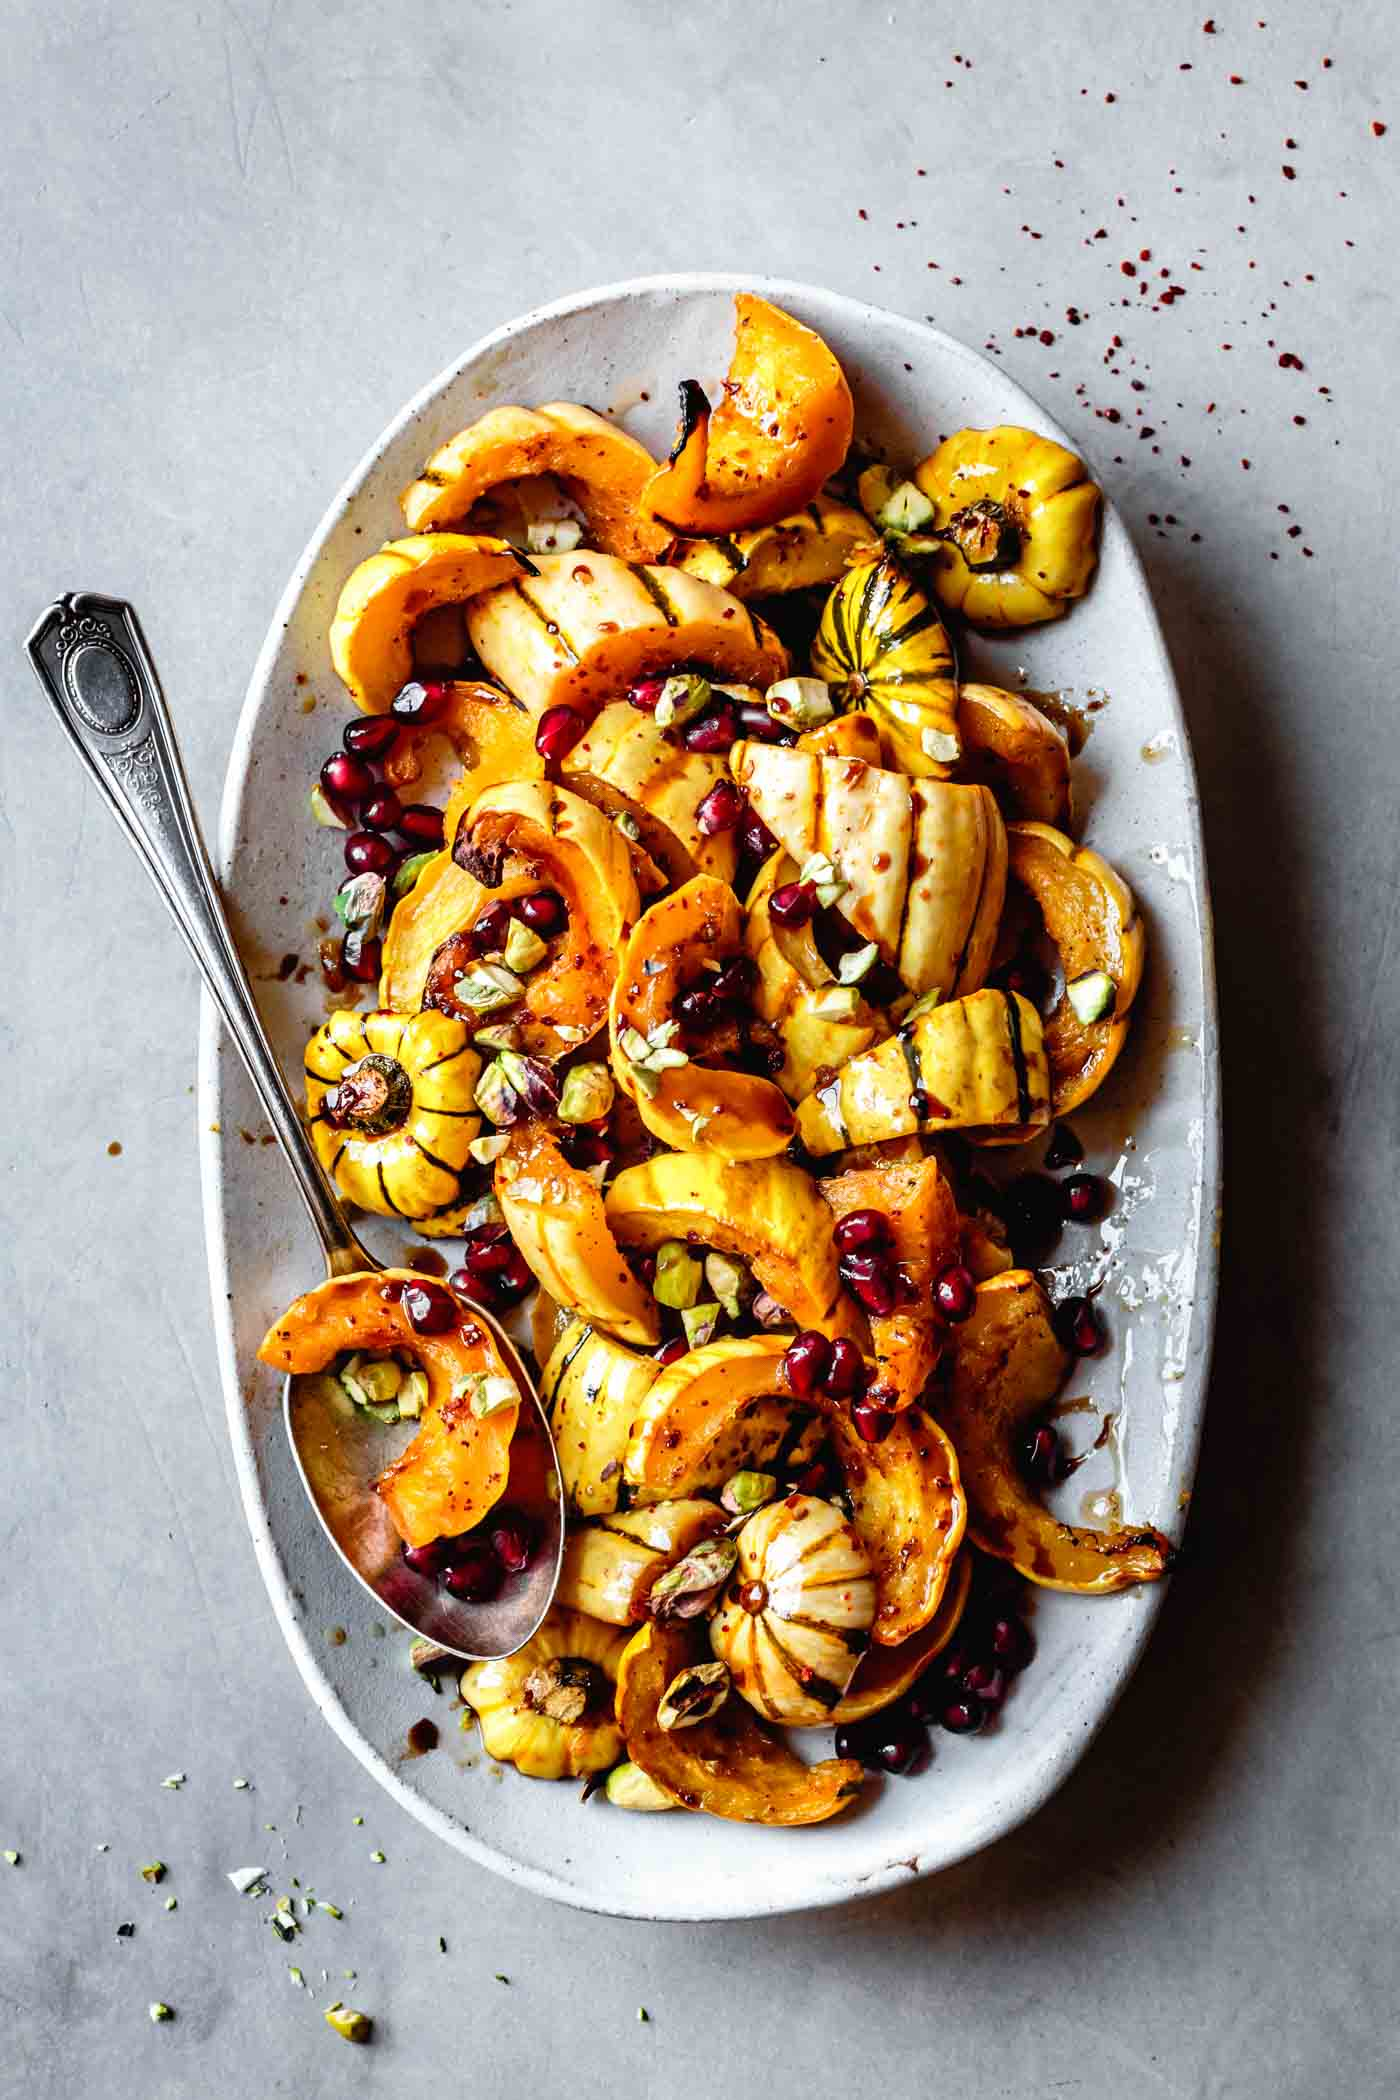 Finished roasted delicata squash recipe on a platter